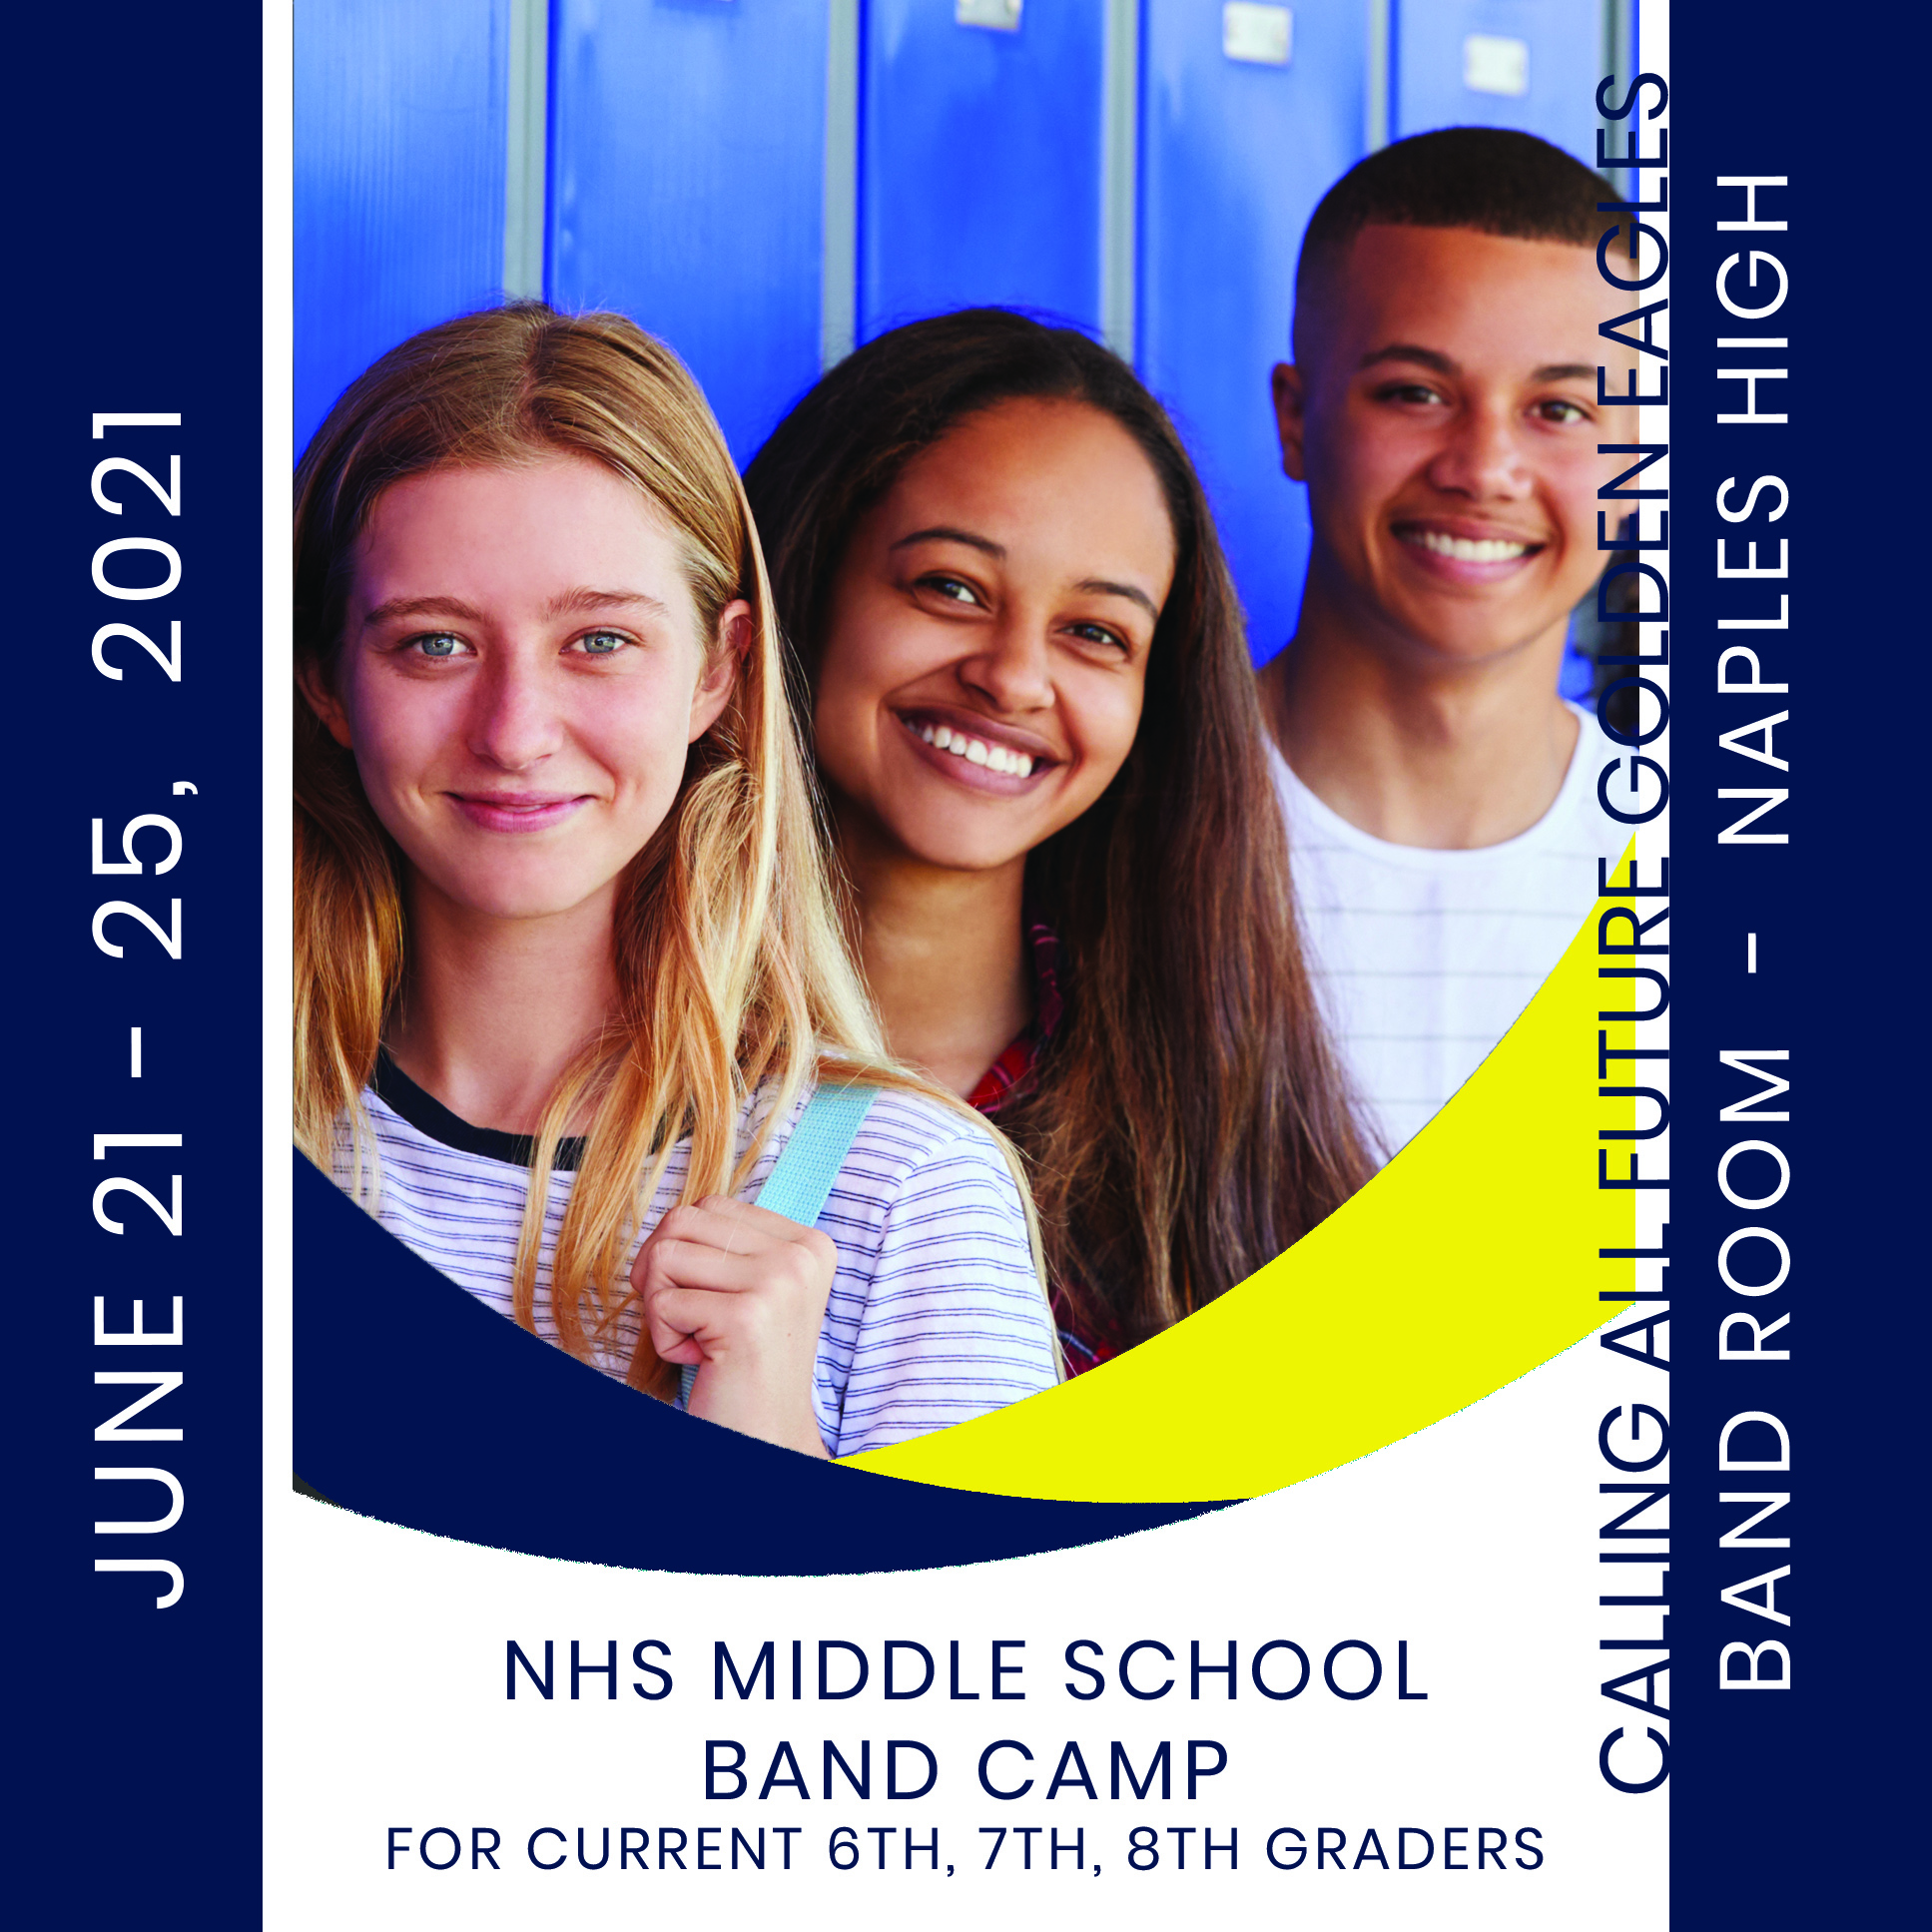 Middle School Band Camp NHS